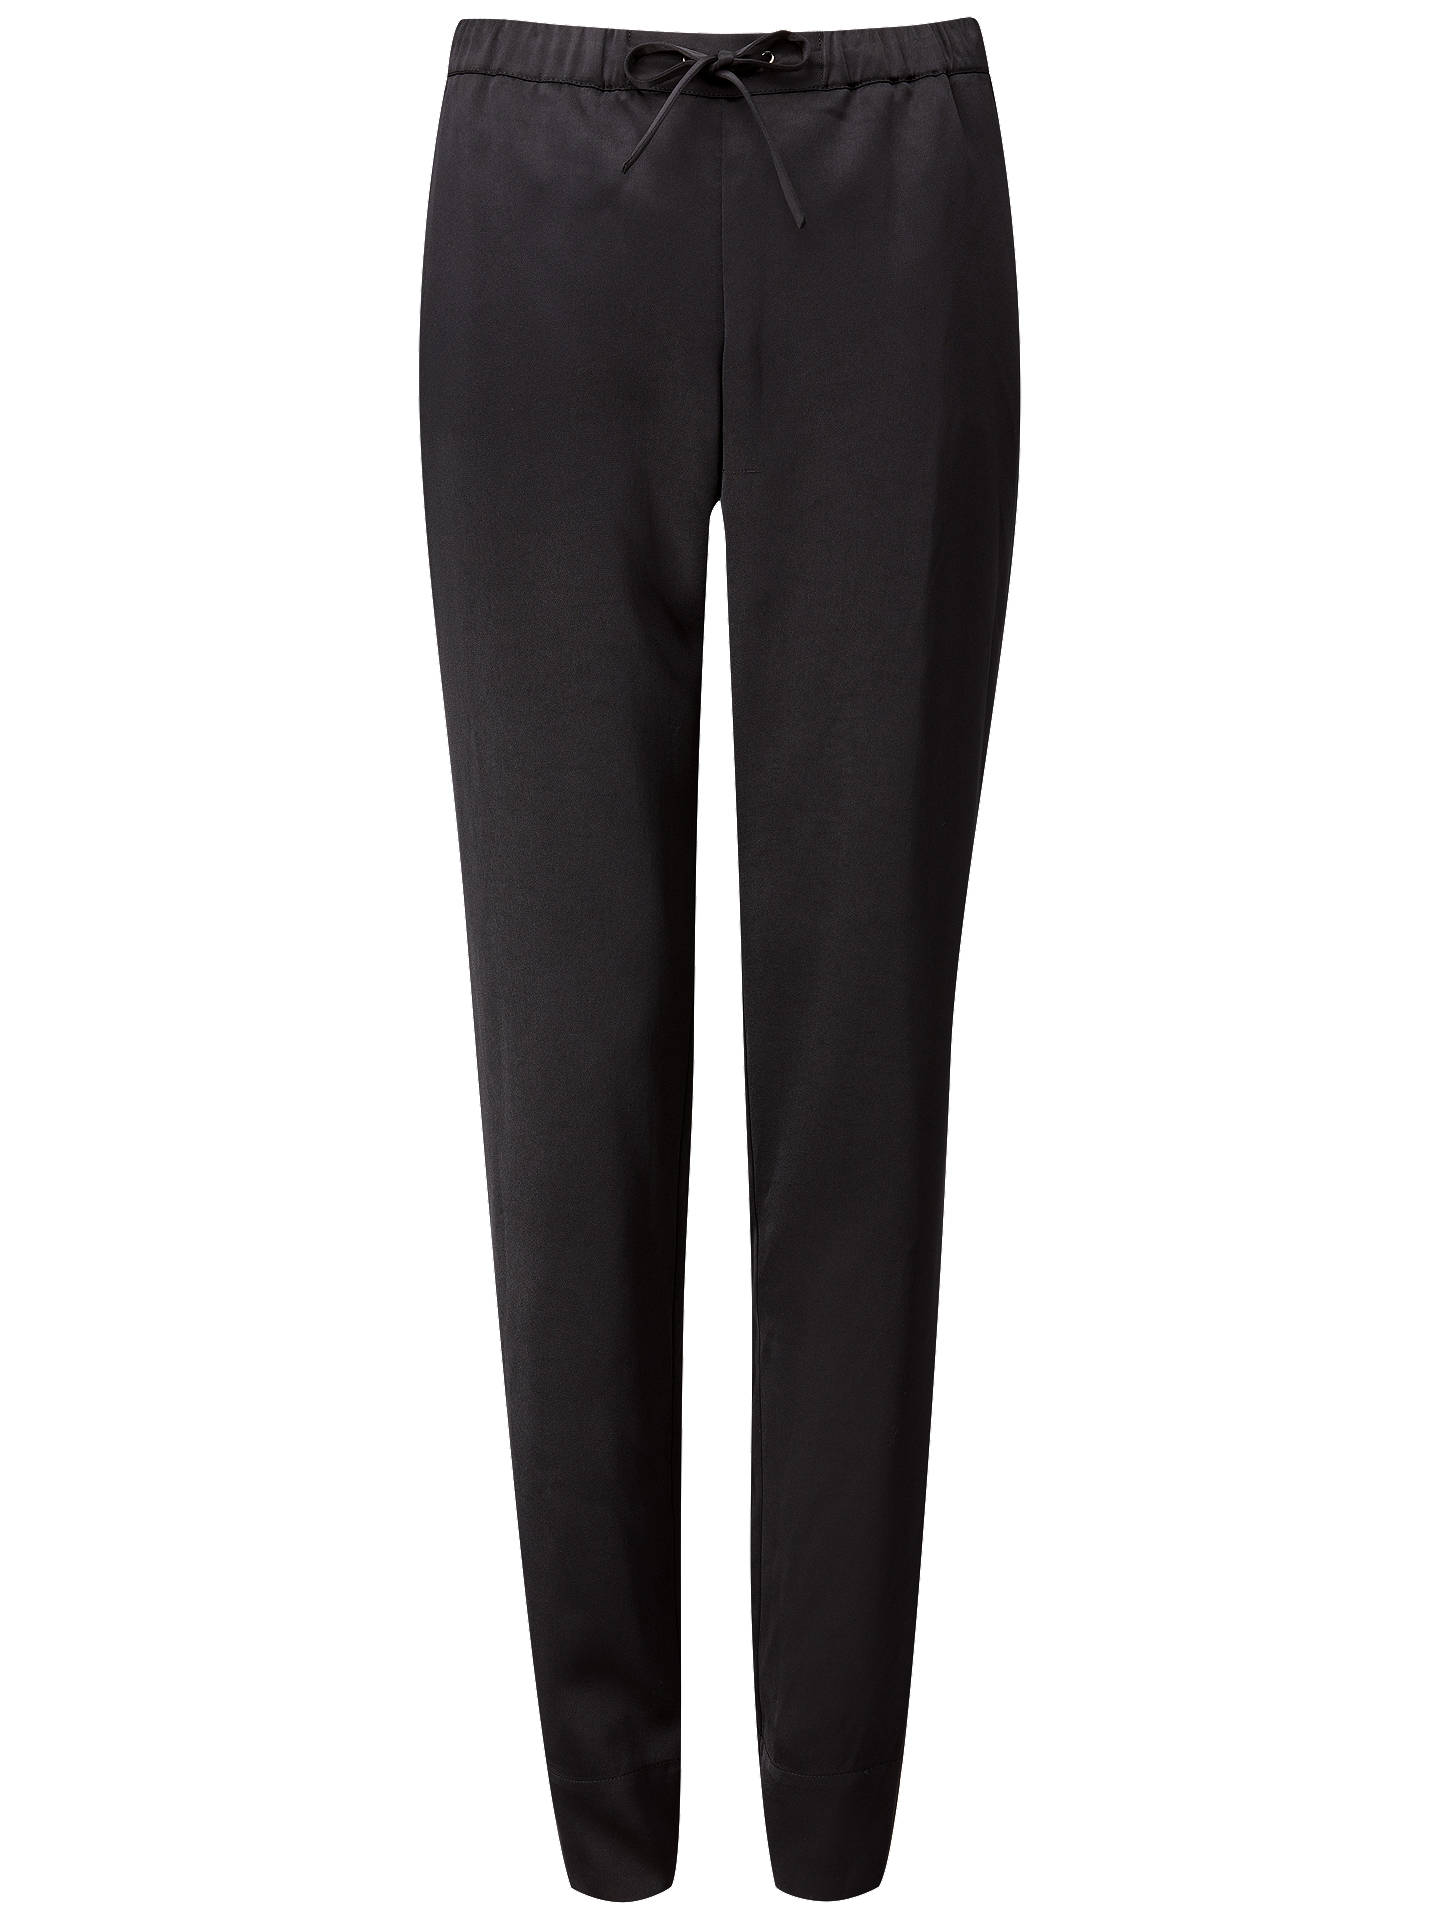 BuyPure Collection Relaxed Satin Trousers, Black, 20 Online at johnlewis.com